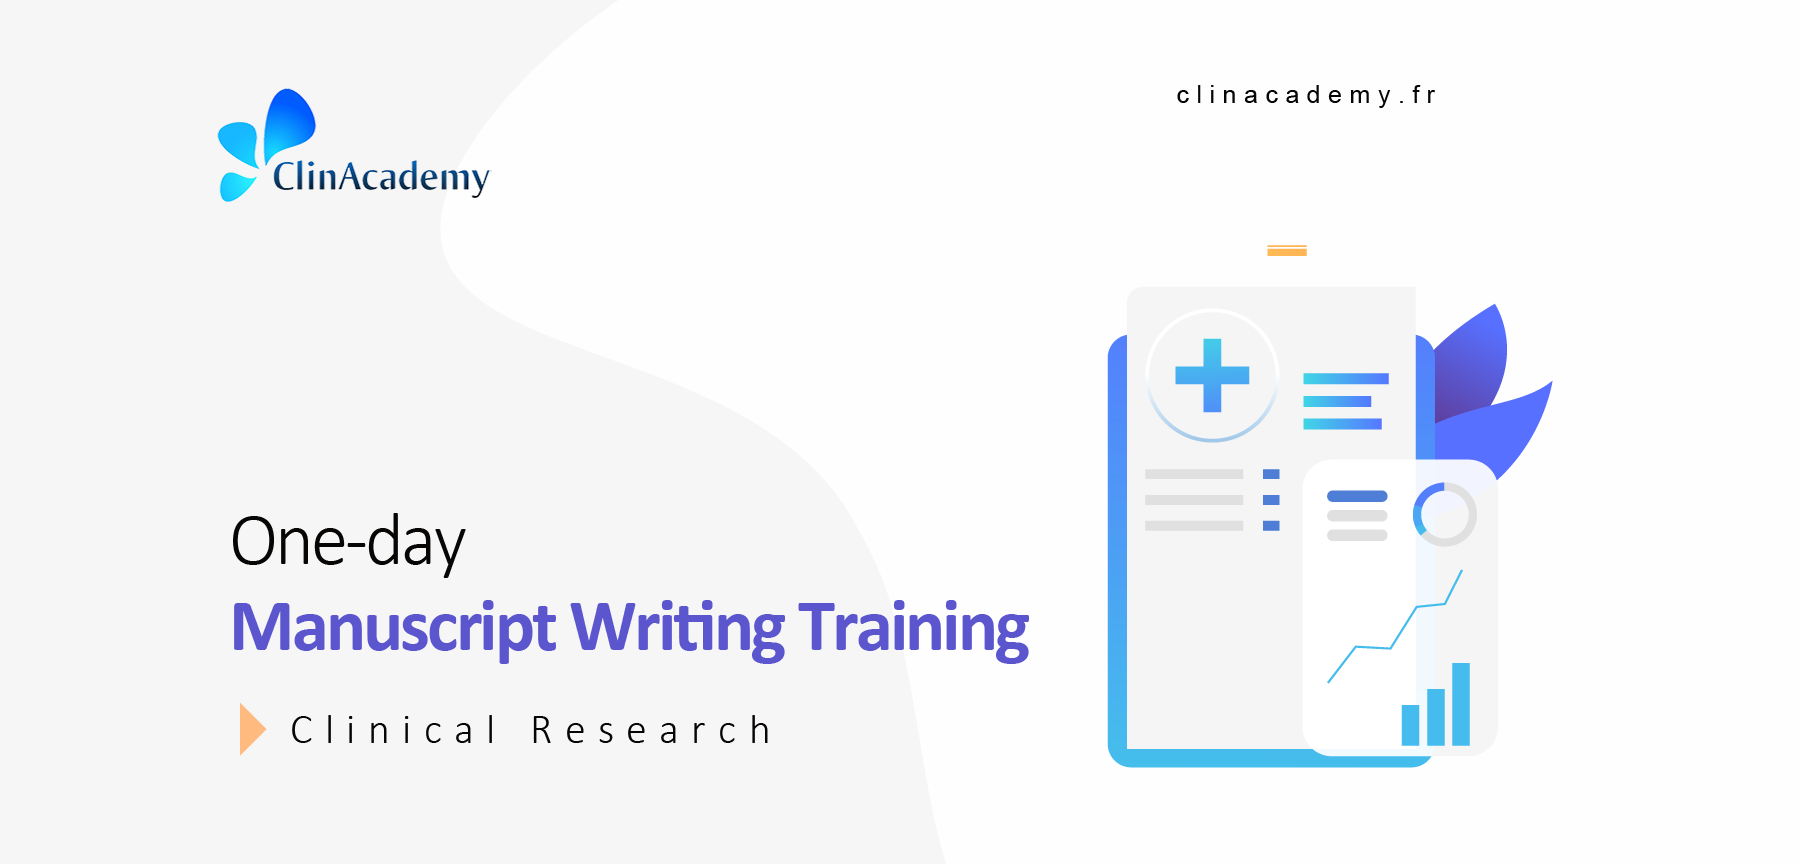 One-day Manuscript Writing Training